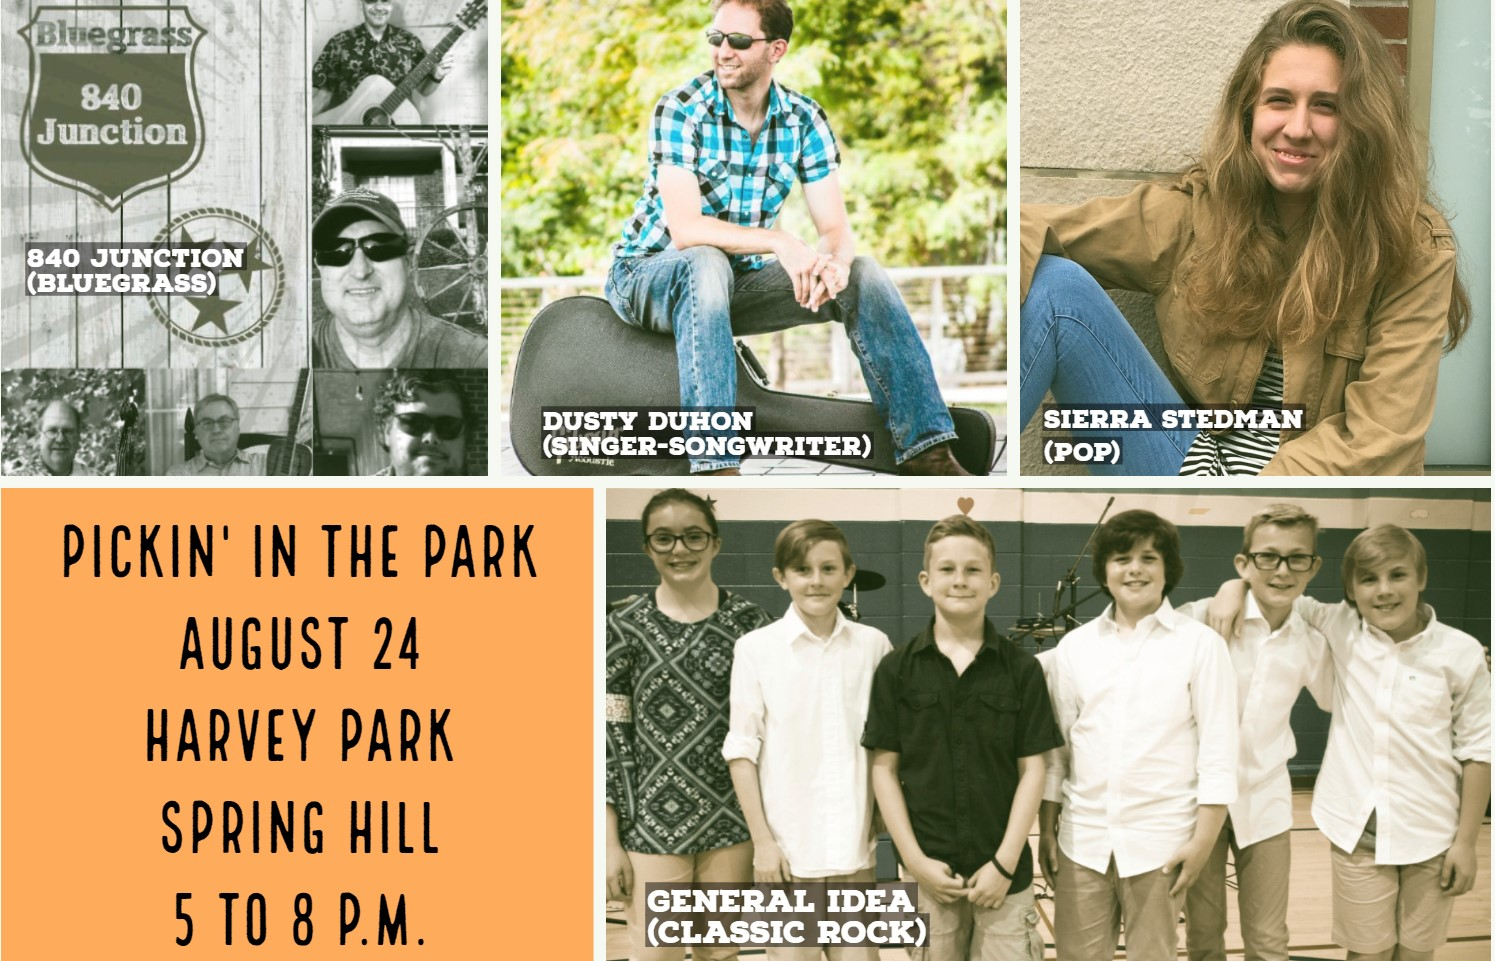 Kid-composed rock band to perform during August's Pickin' in the Park music festival Saturday